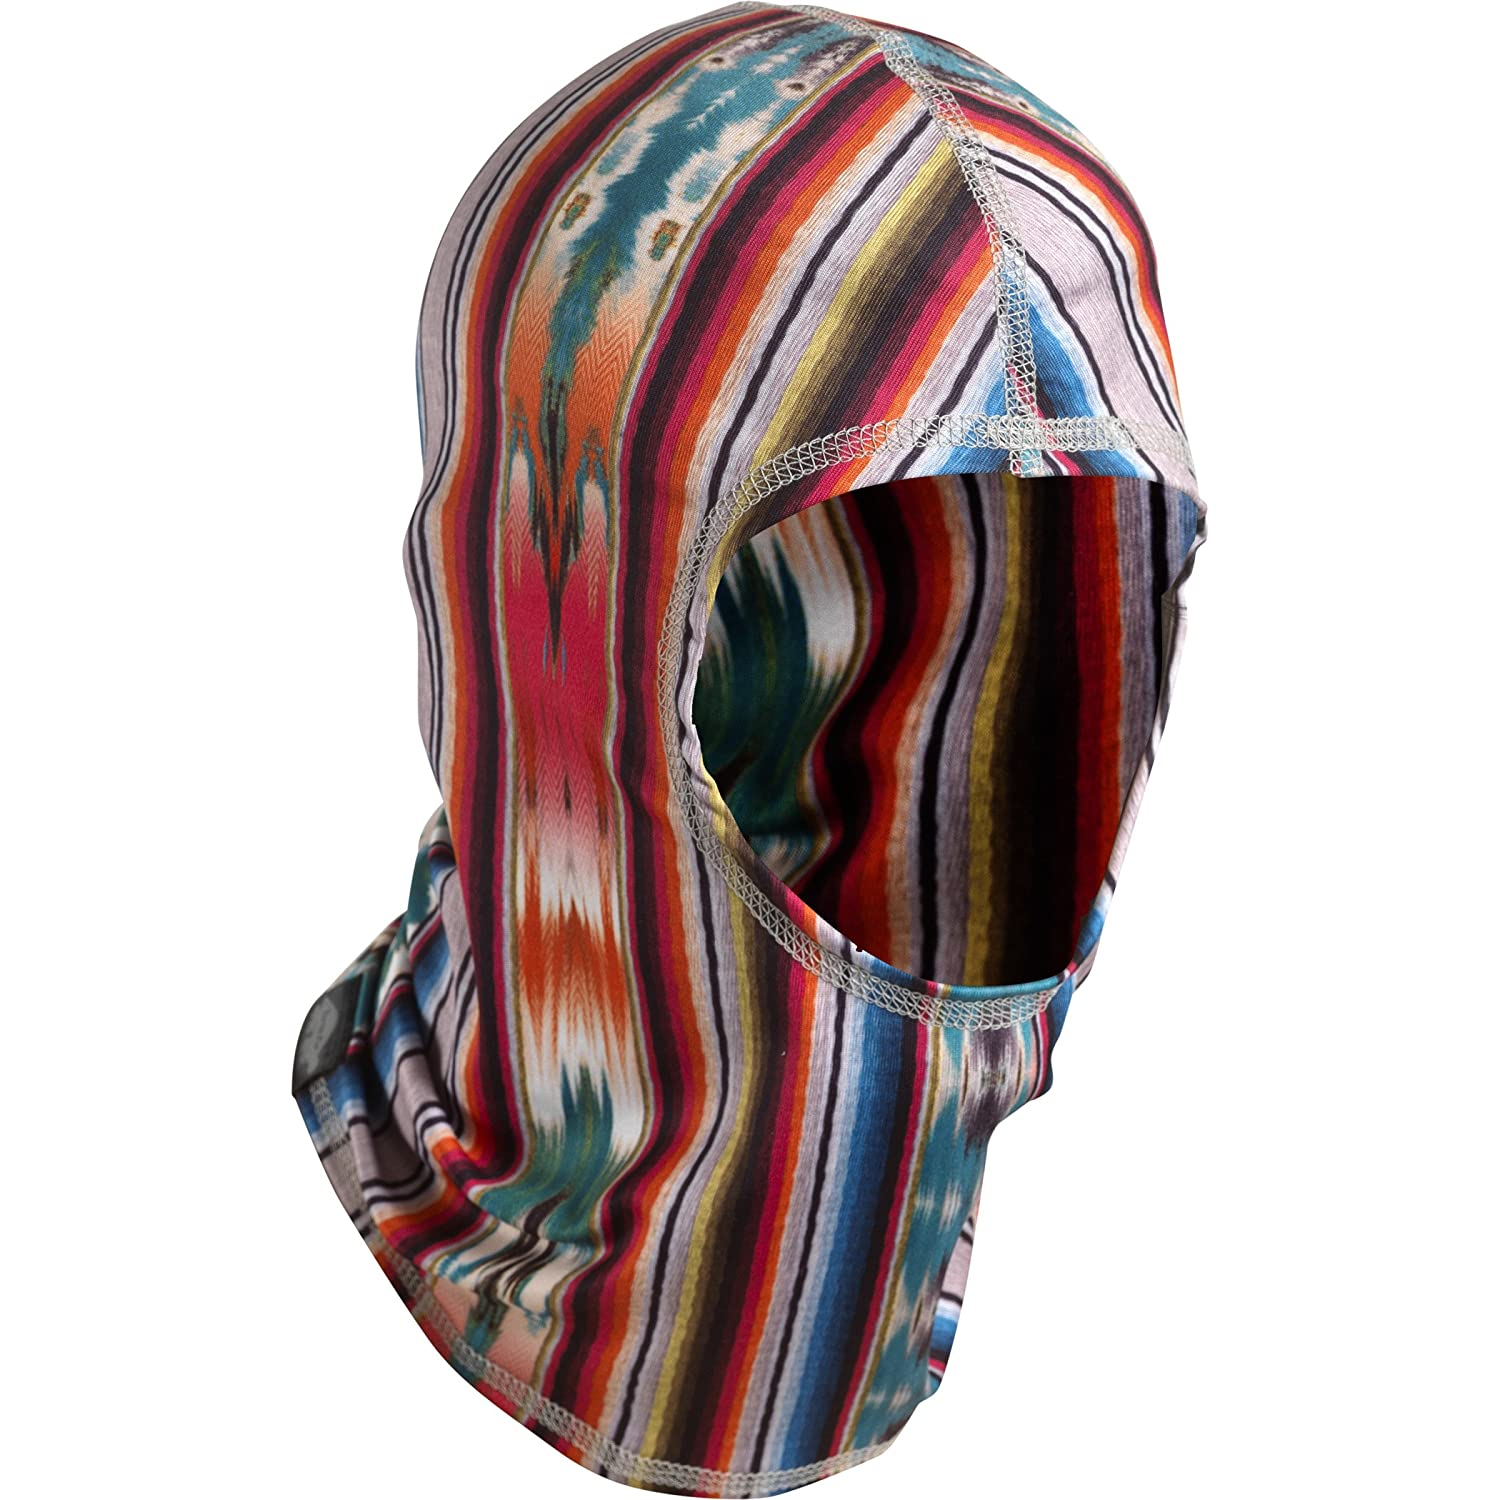 Turtle Fur Comfort Shell Frostklava, Lightweight Performance Balaclava Painted Blanket Statement